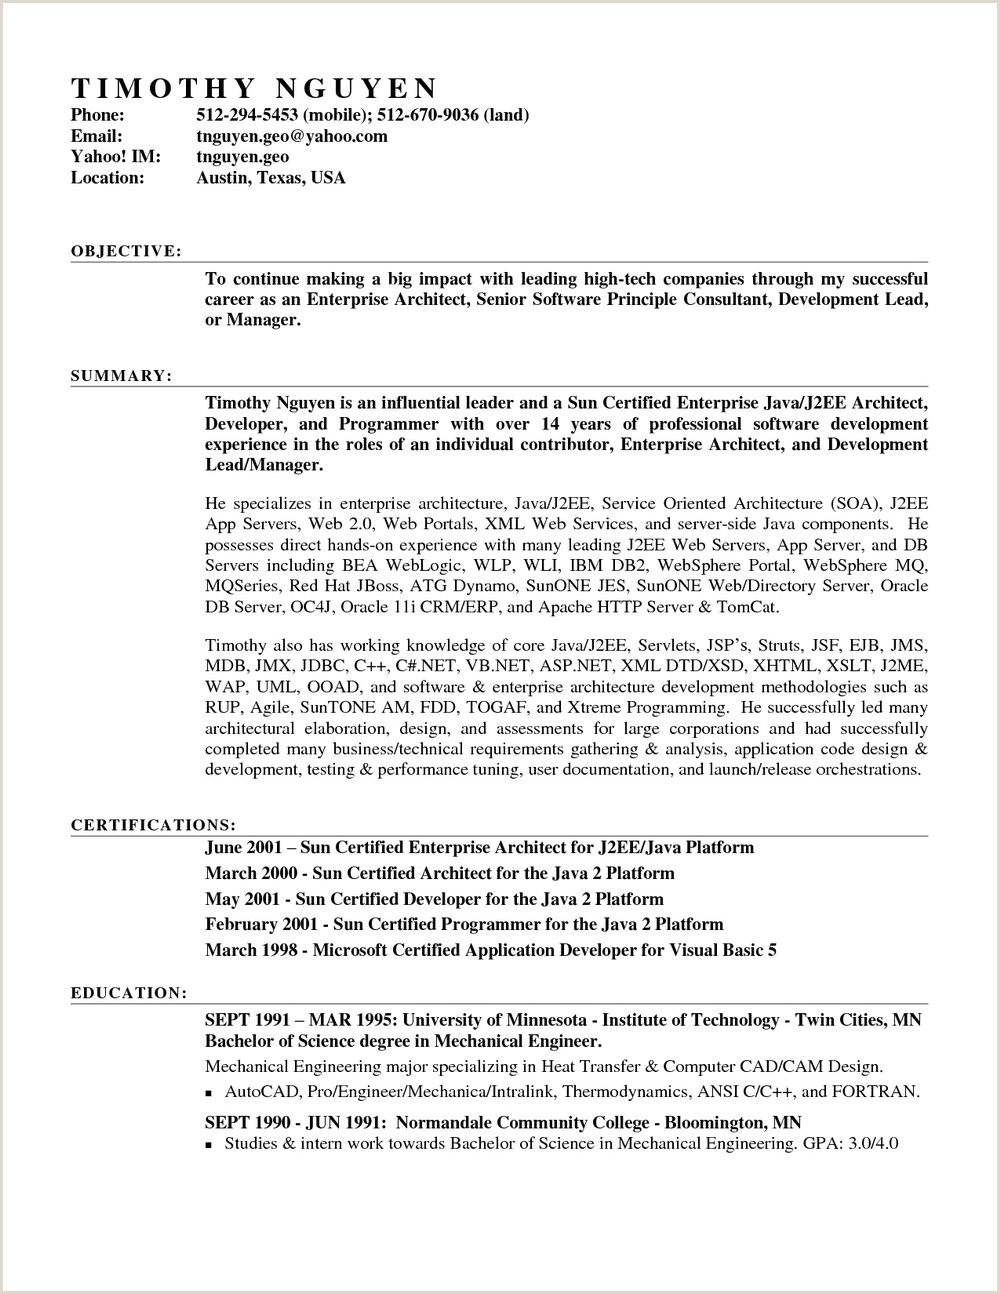 Engineering Fresher Resume format Download In Ms Word Fresher Resume Template India Templates Nzk1mdm